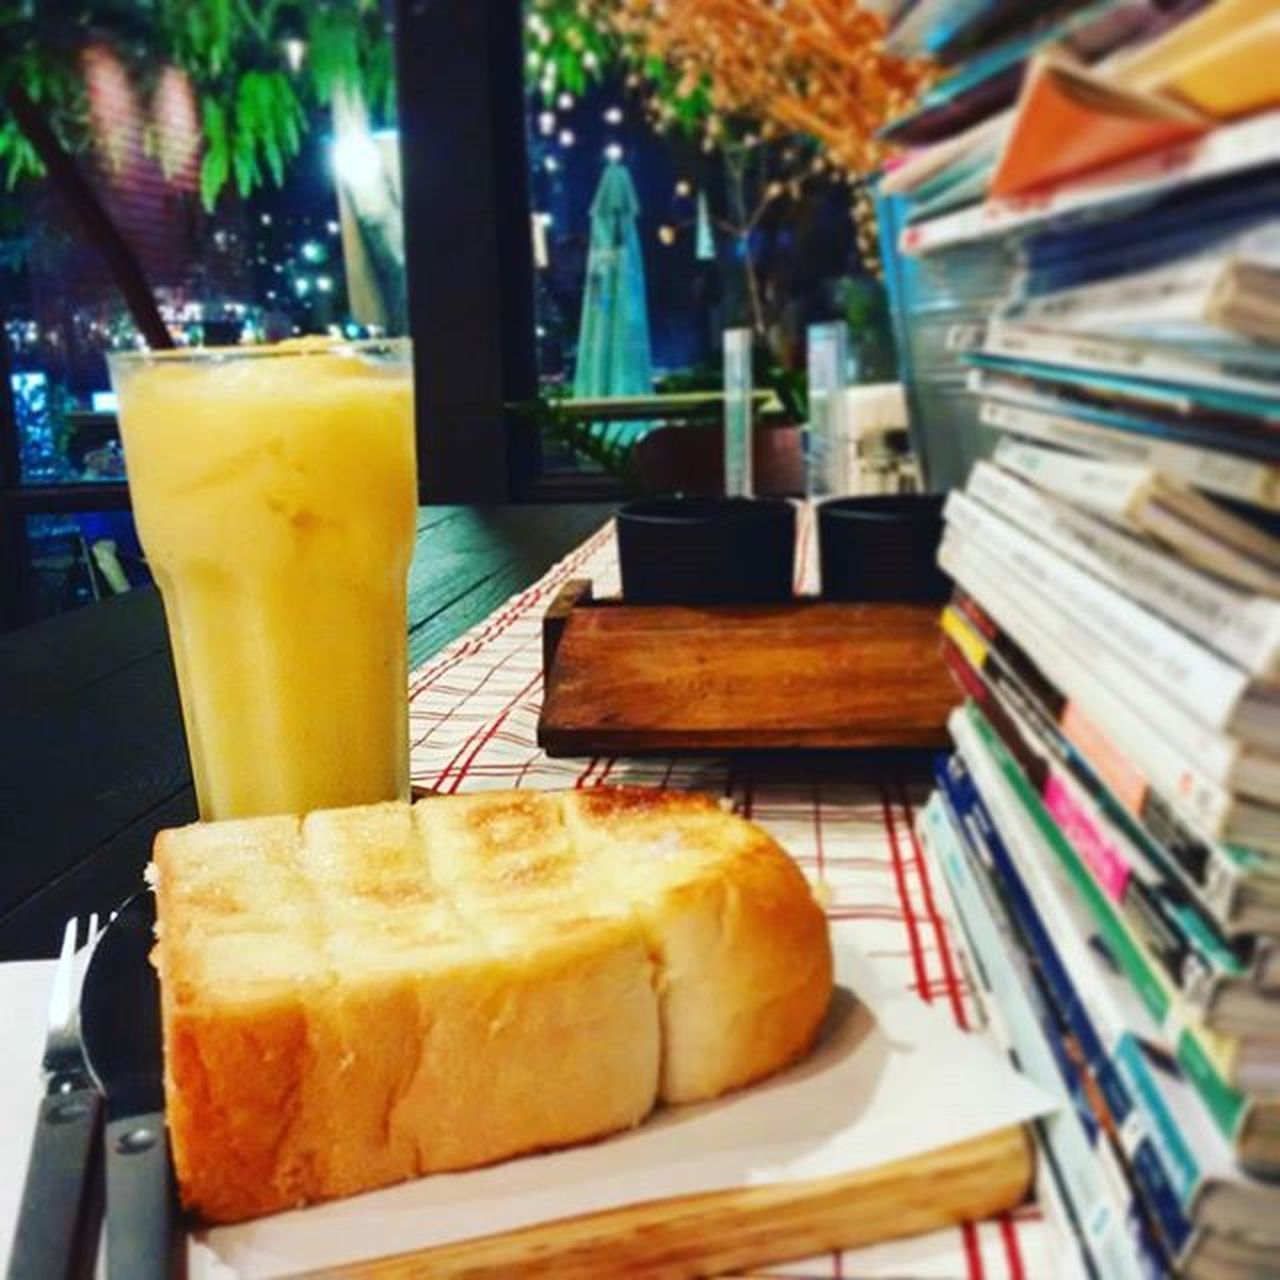 """Mango smoothie & """"Better Together Song"""" Photo by Blackberryclassic Blackberryclubs Jackjohnson Waitingmyparents แค่เพลงกับมะม่วงฟินละ Coffeeshops  Mango Smoothies Smile Chill Saturday Happiness Love Photooftheday Lomo Abstract Art Toyphotography Toycamera Bangkok Thailand Cafe Feelsogood"""